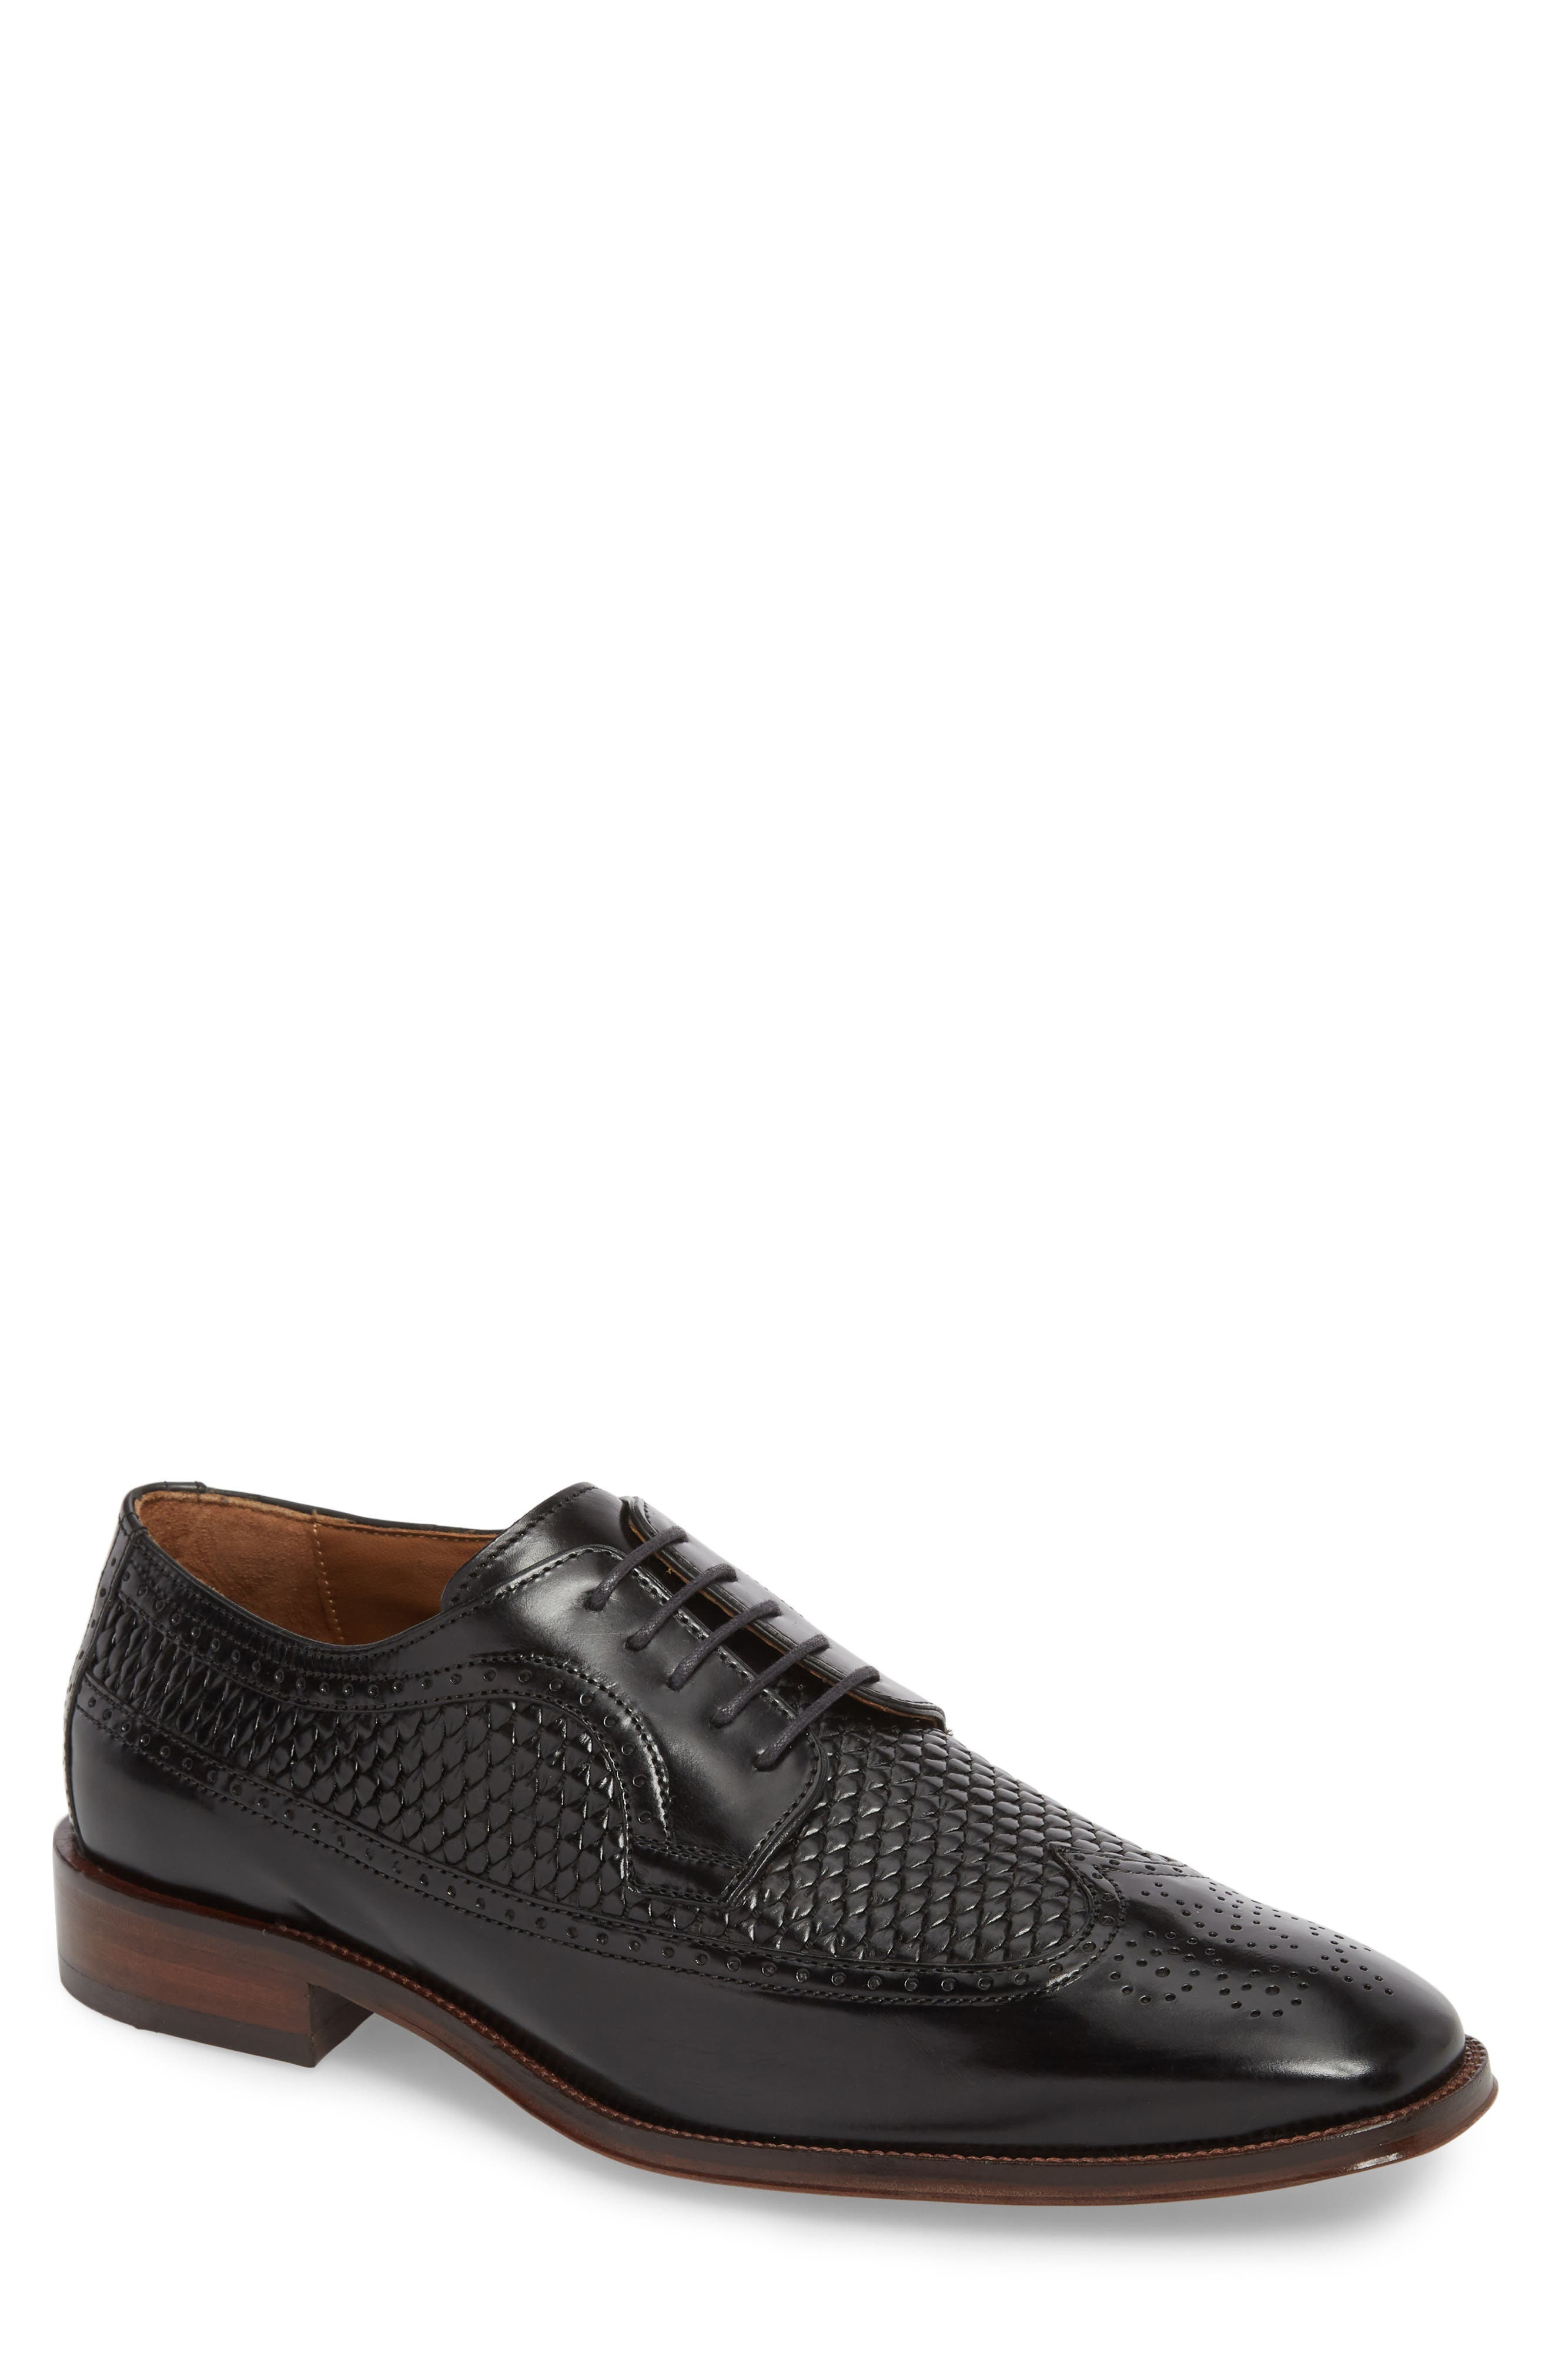 Boydstun Woven Wingtip Derby,                             Main thumbnail 1, color,                             Black Leather